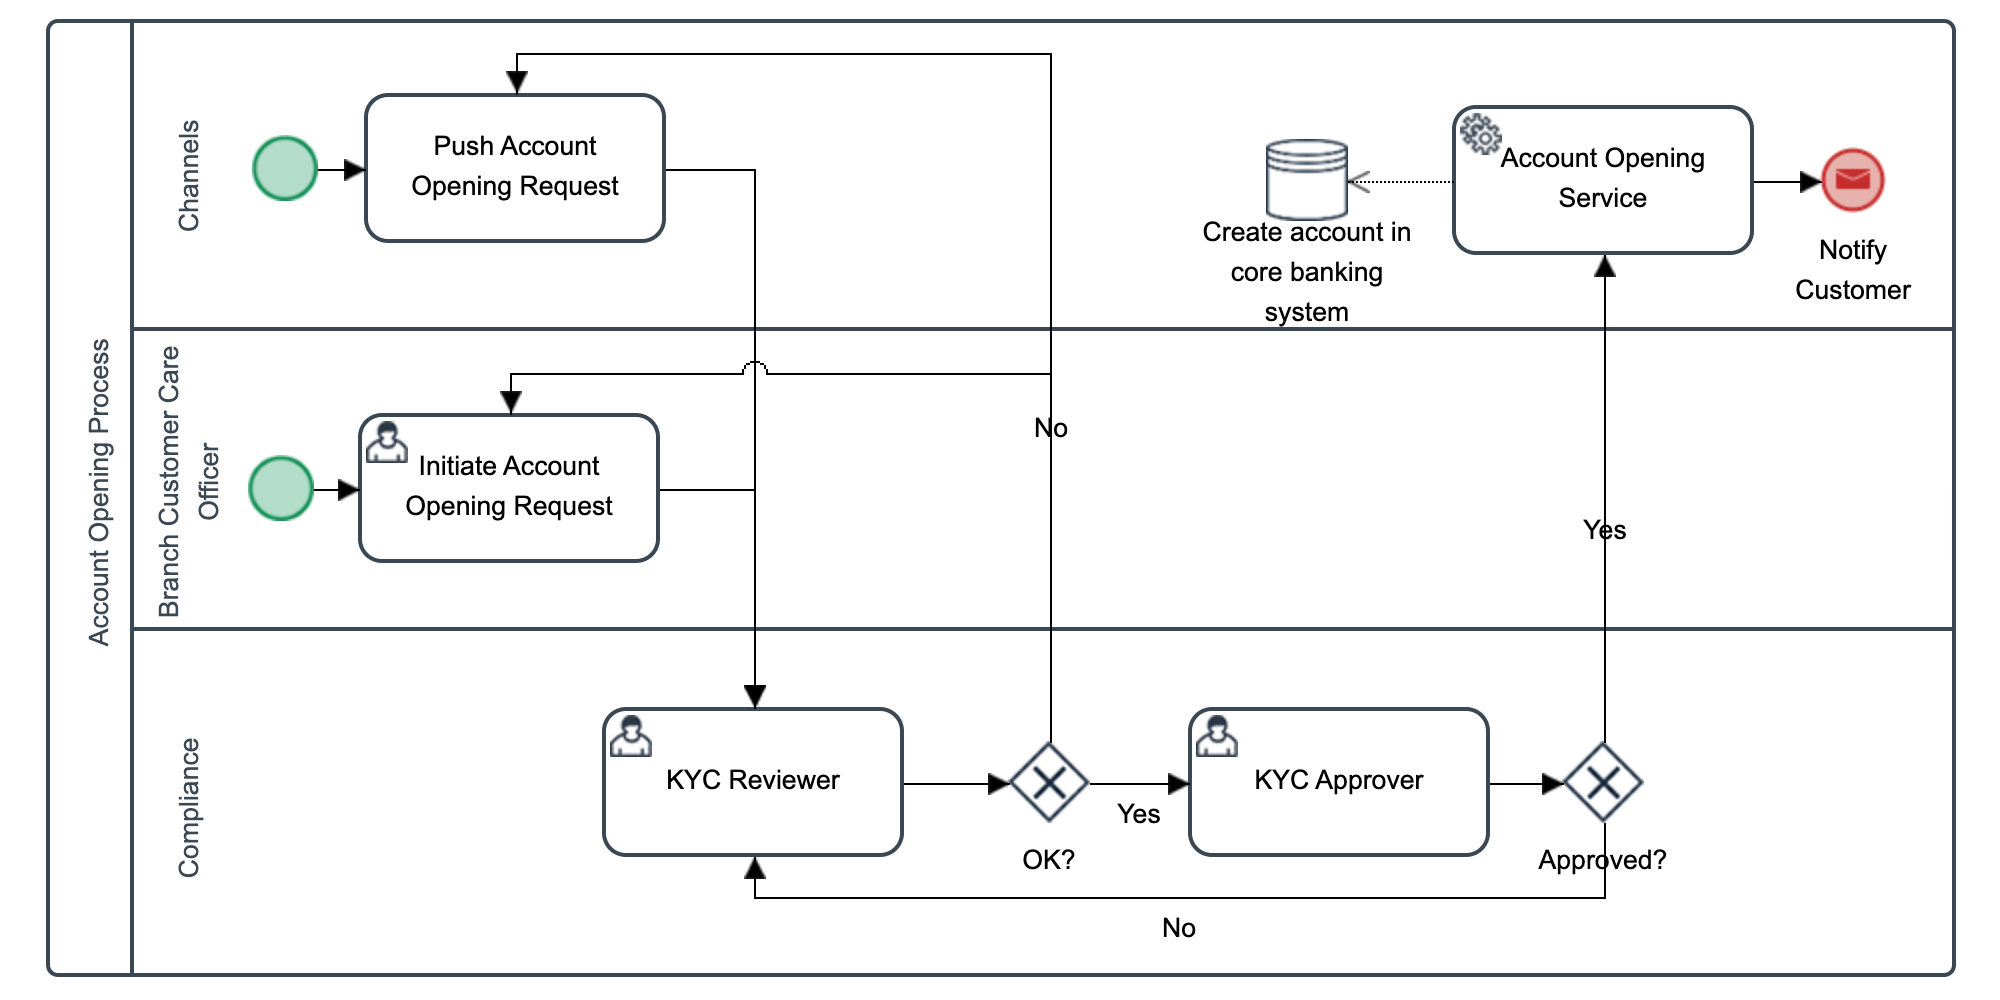 Account Opening Process BPM Model